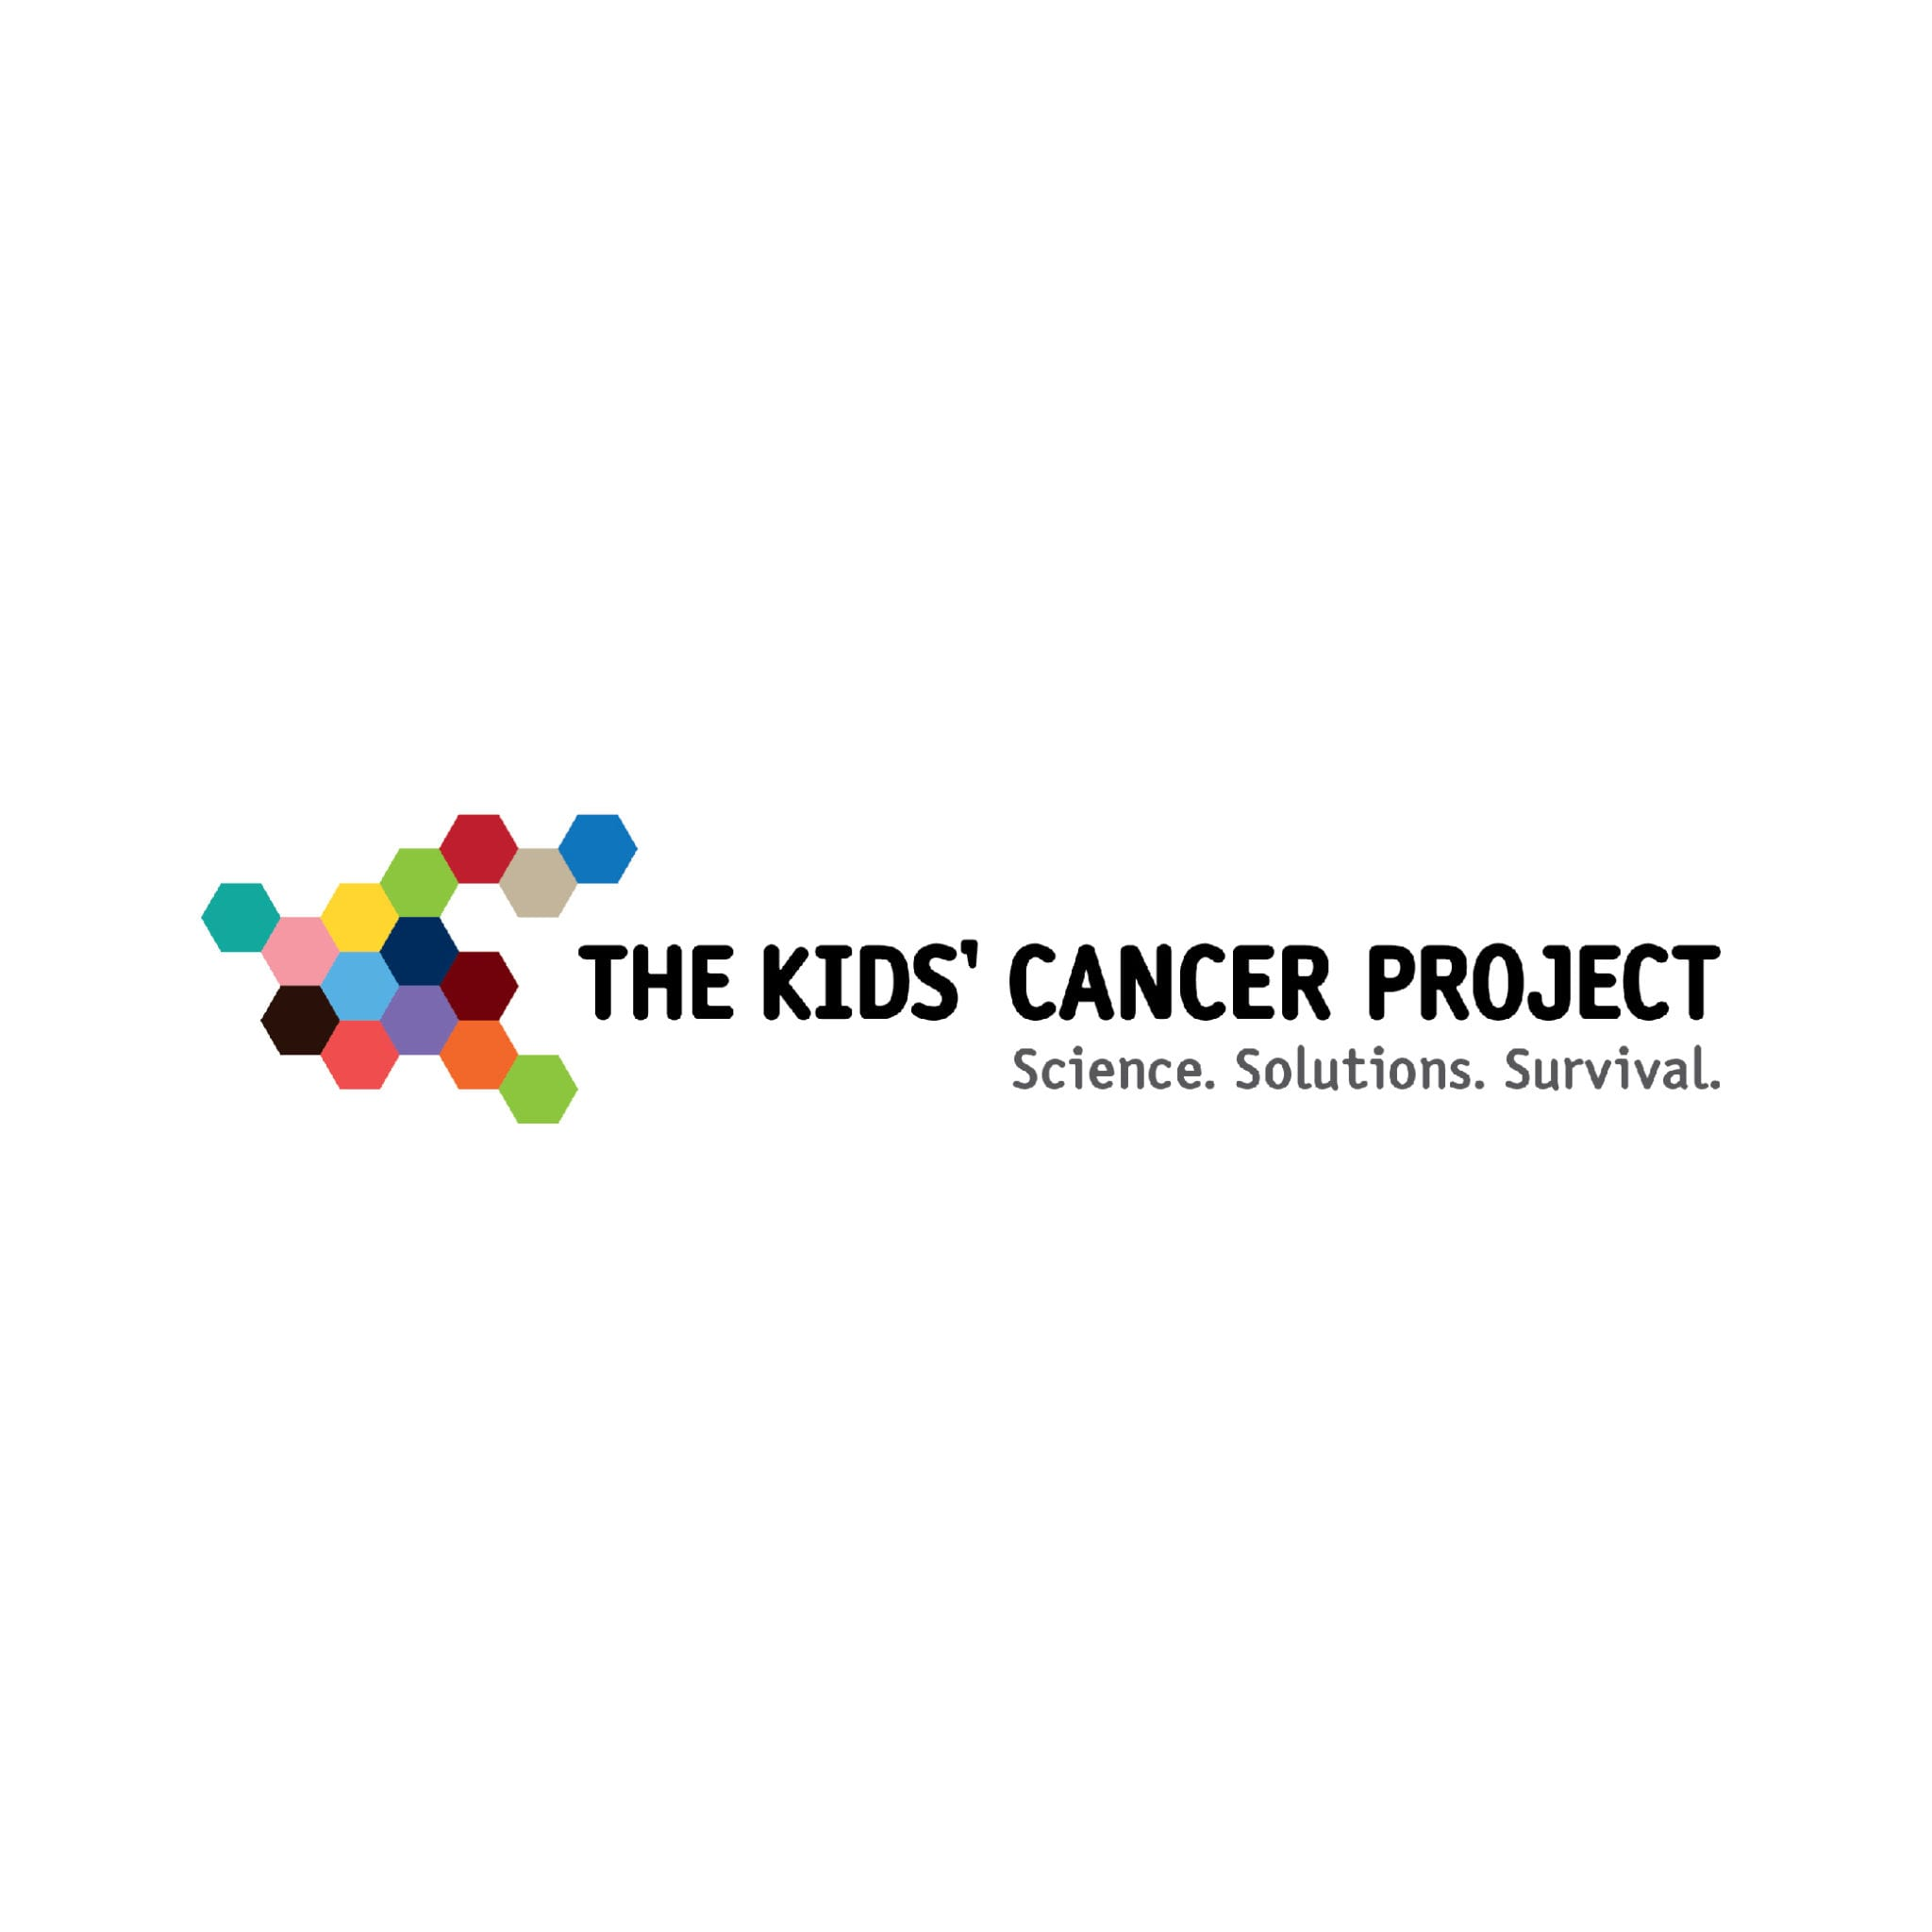 The-Kids-Cancer-Project-Inspired-Adventures